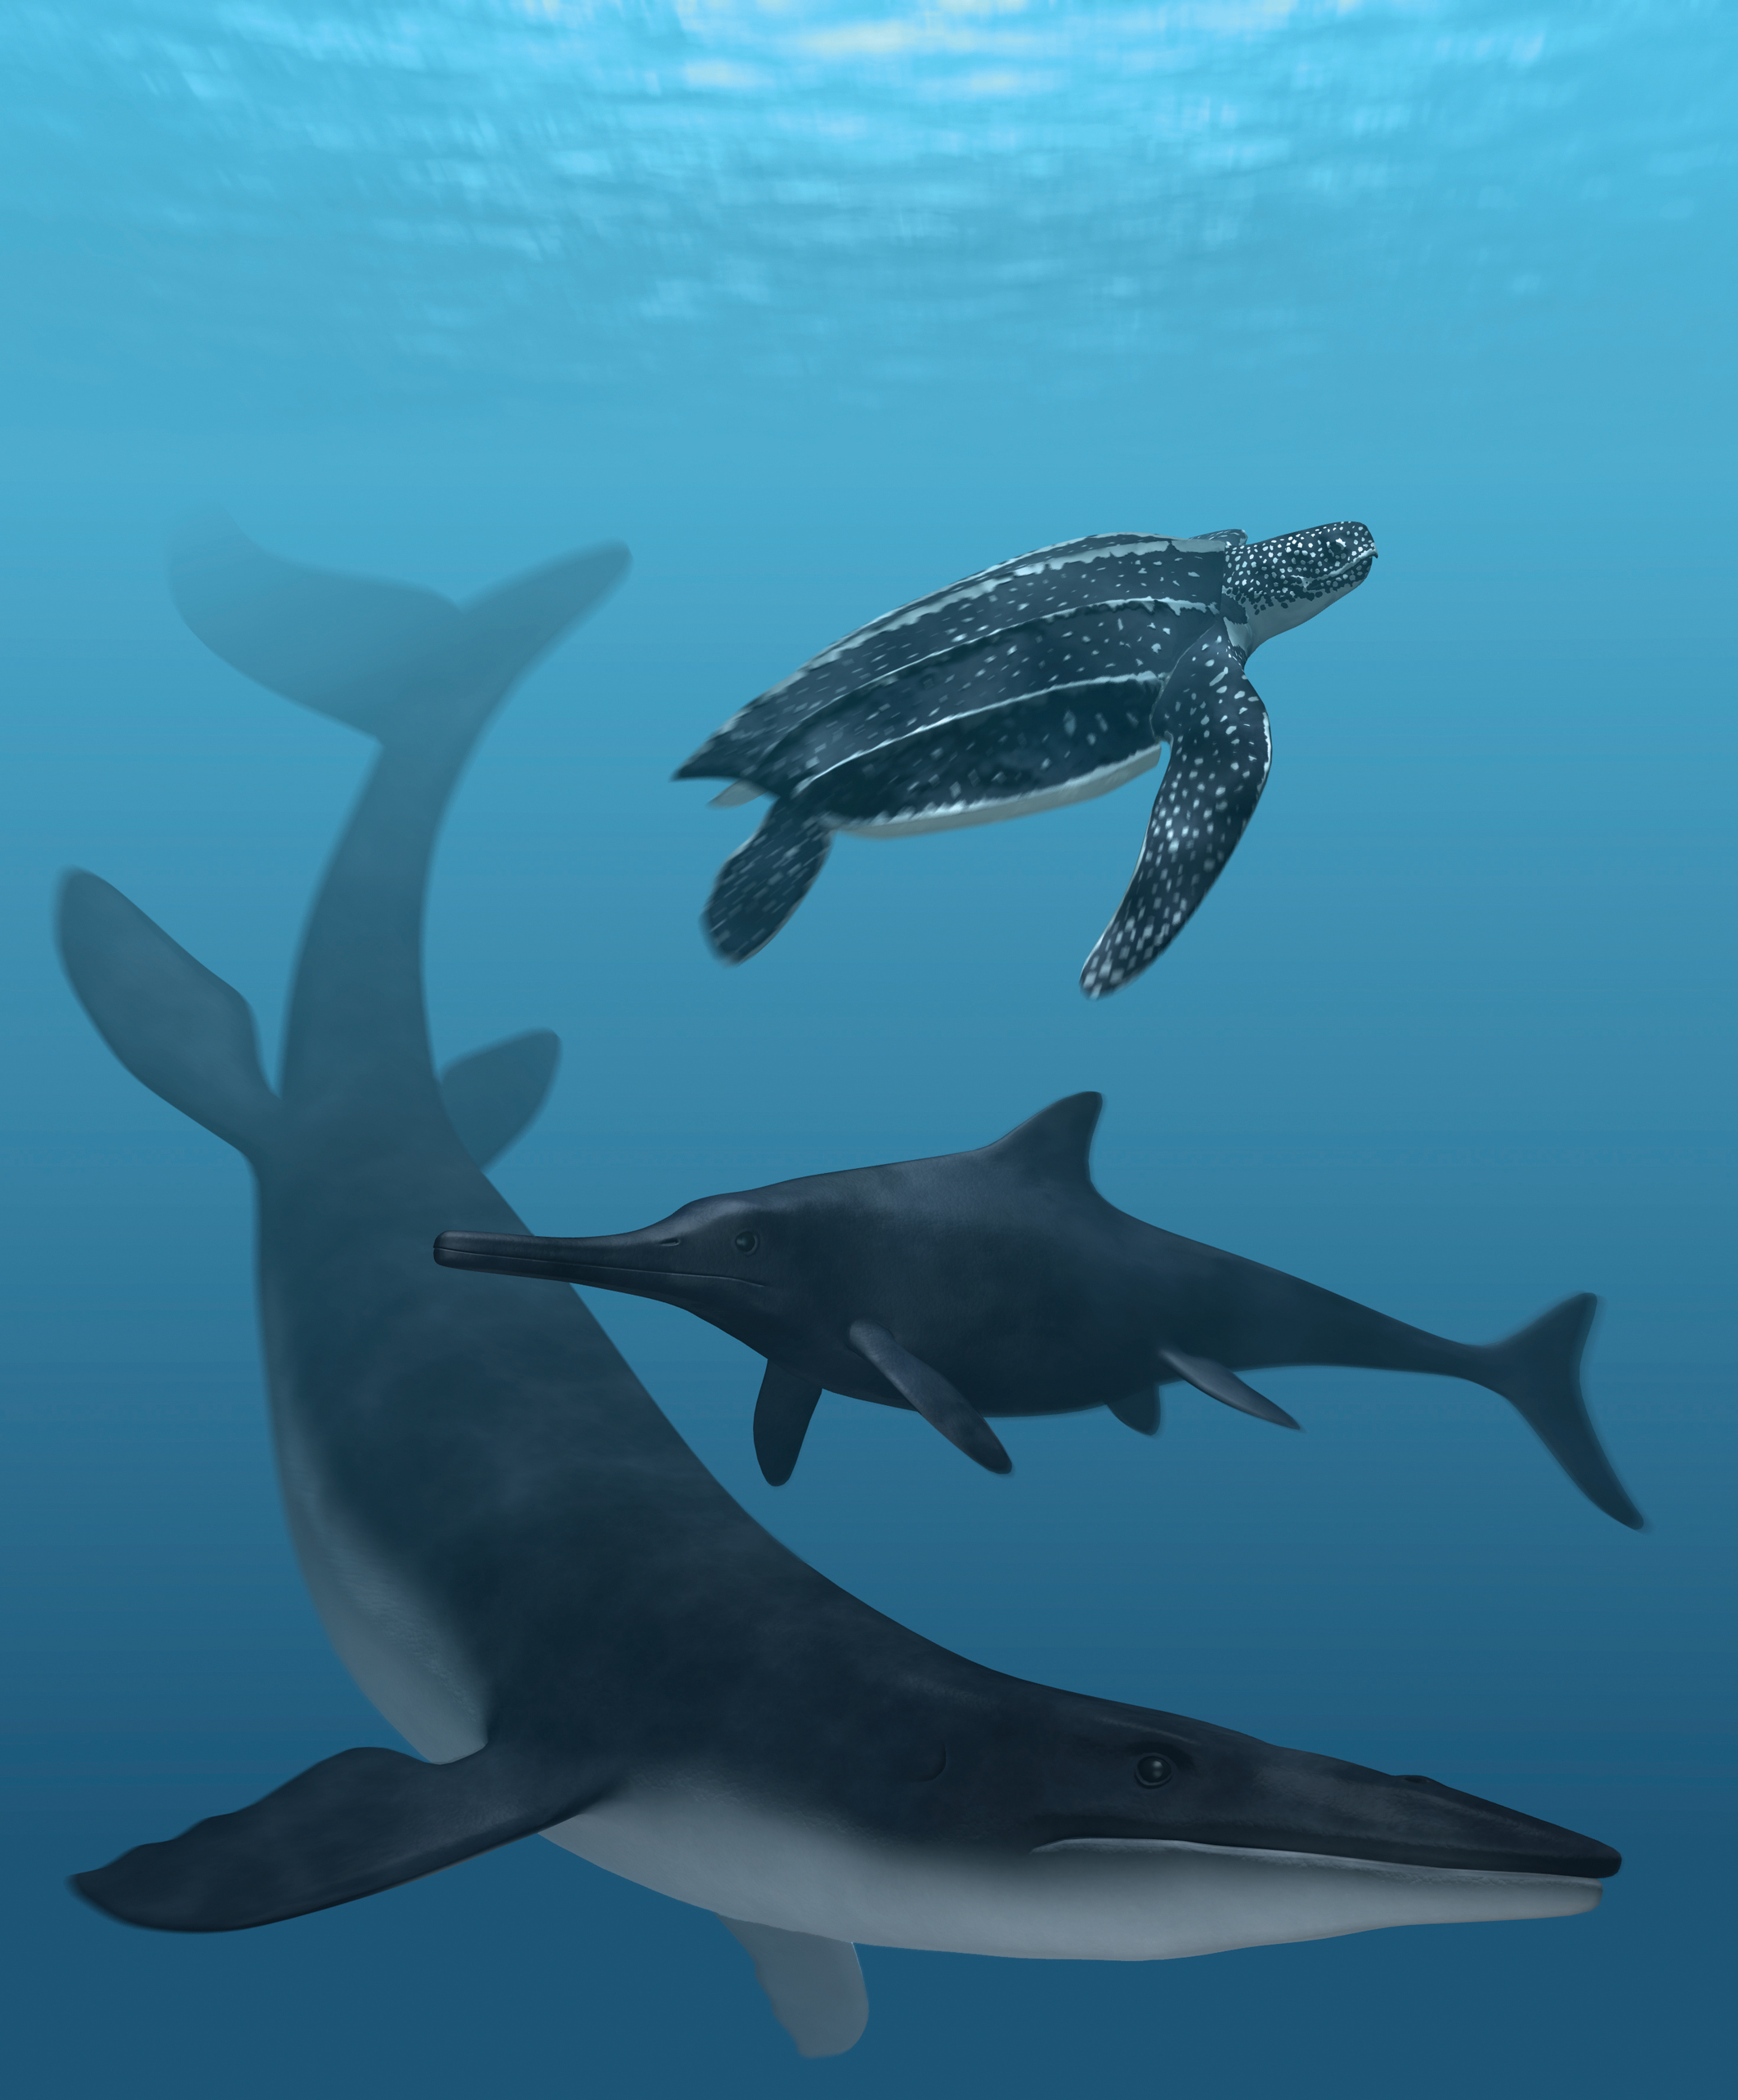 An artist's depiction of what these fossil reptiles may have looked like in life. The preserved skin pigment indicate they had some amount of dark coloring. Illustration by Stefan Sølberg.